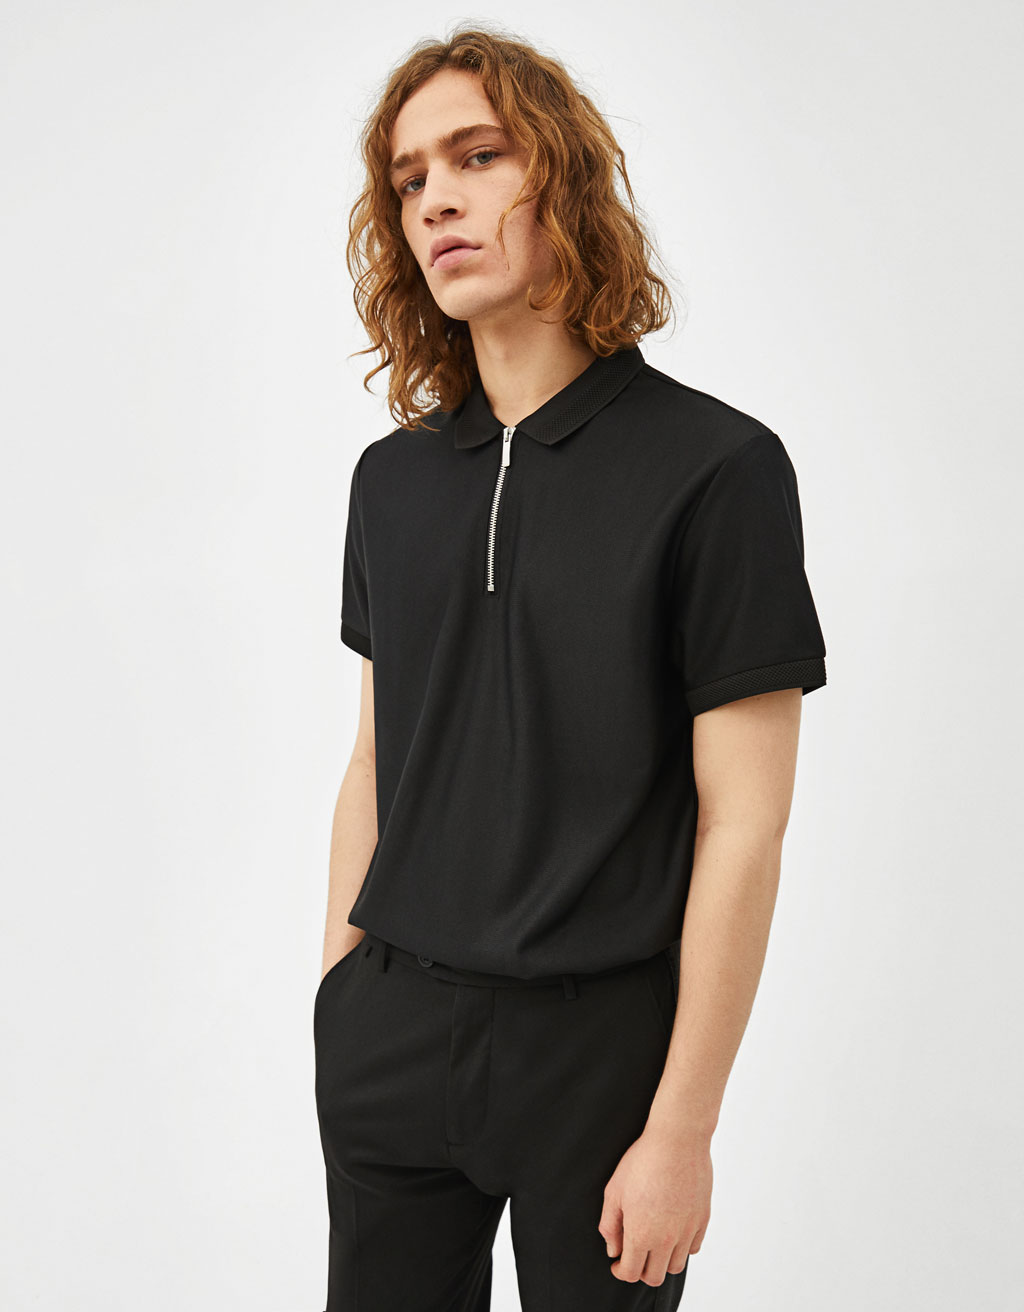 Knit polo shirt with zip